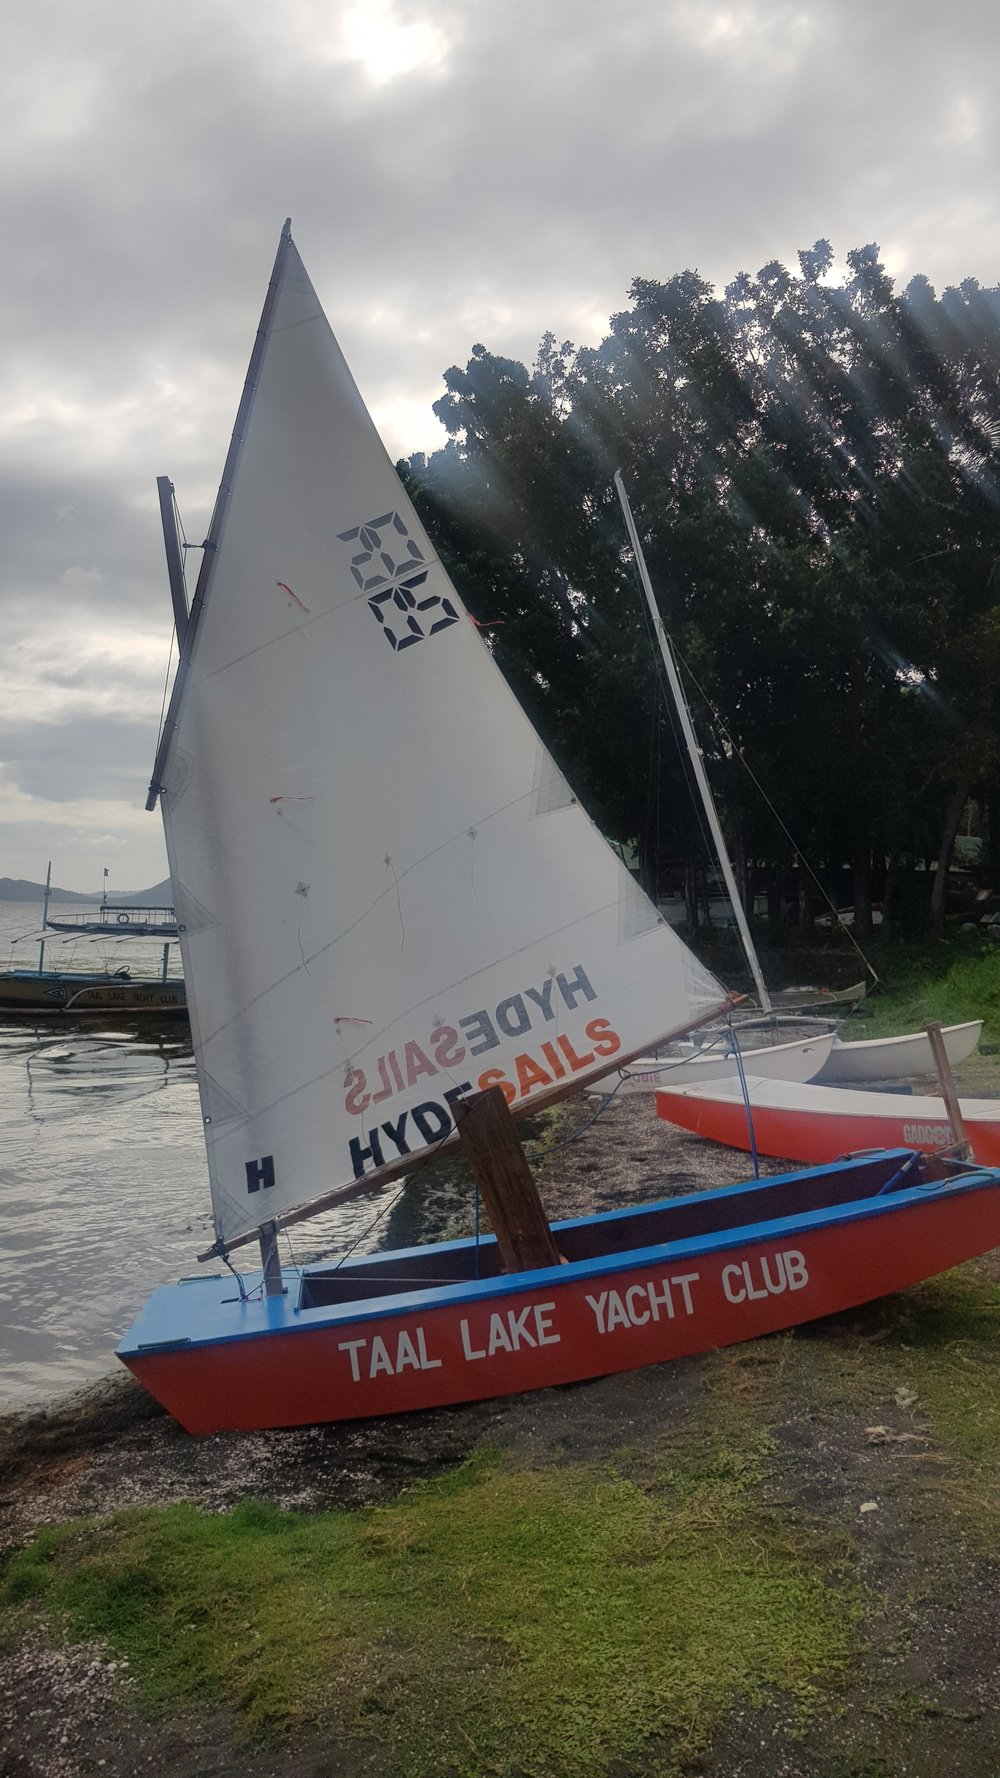 The Goose sailboats for children to learn on